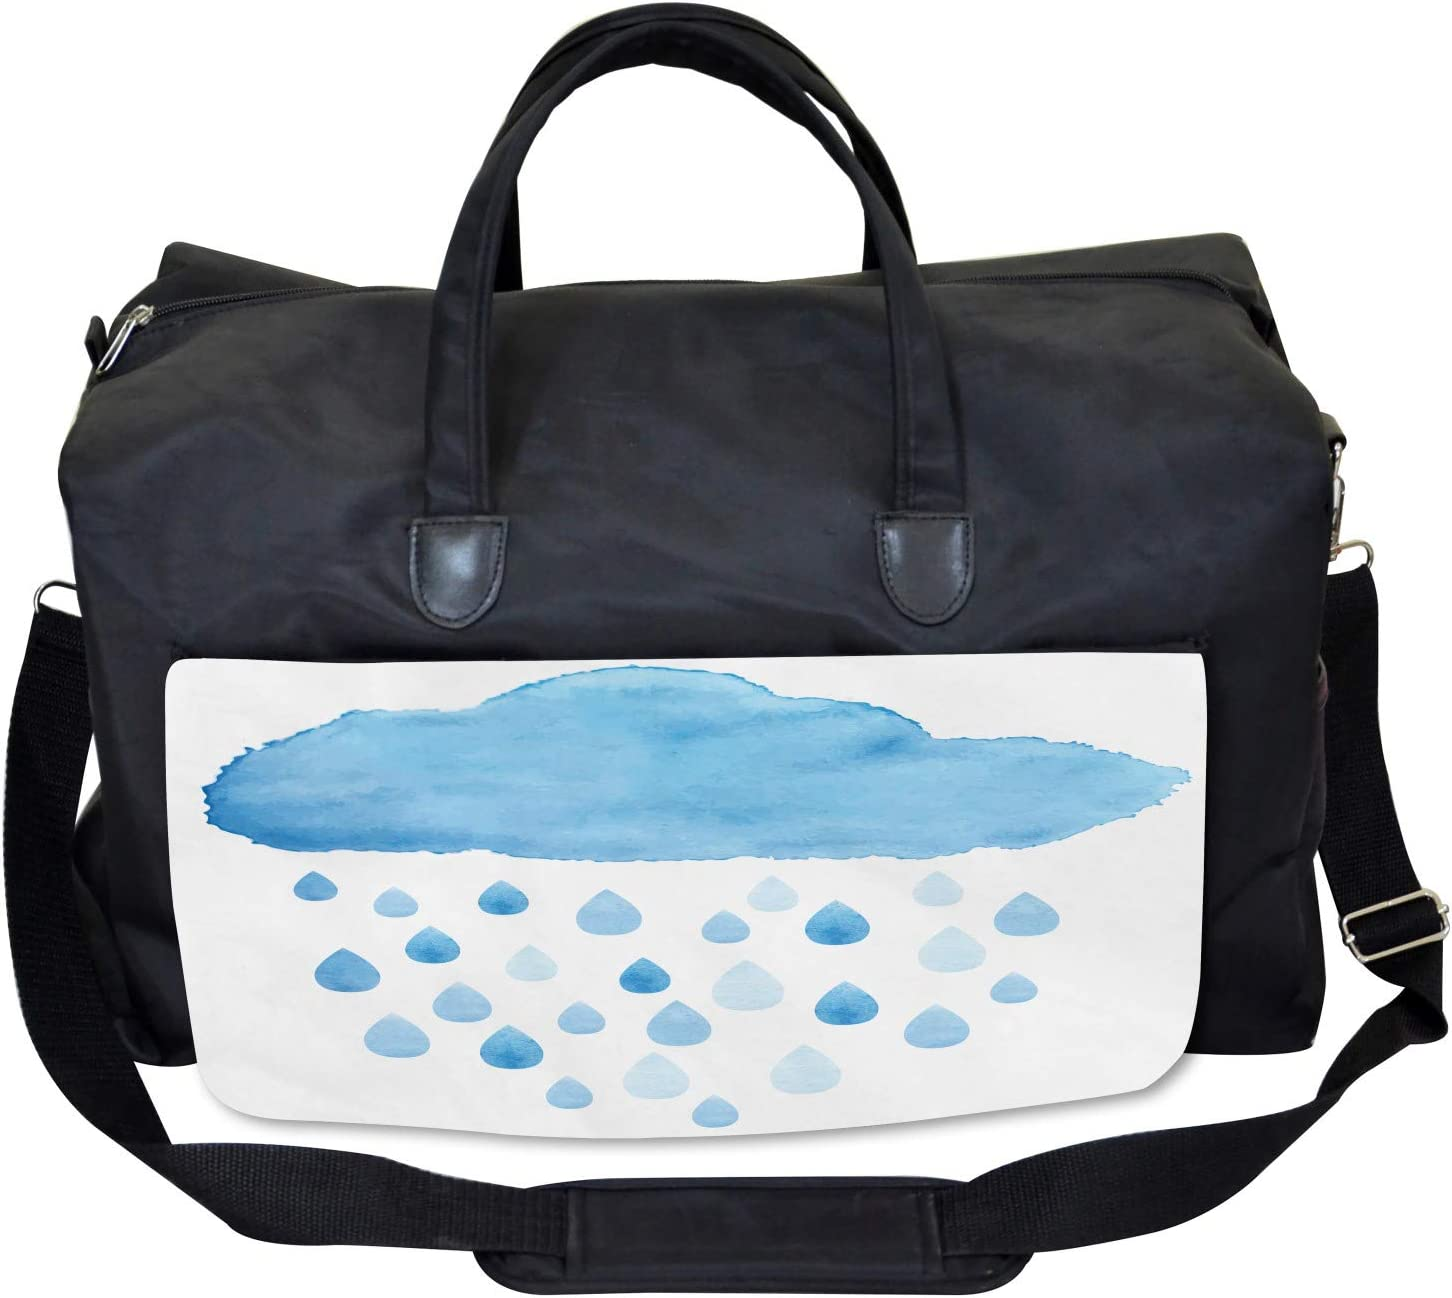 Rain Drops and Cloud Ambesonne Blue White Gym Bag Large Weekender Carry-on